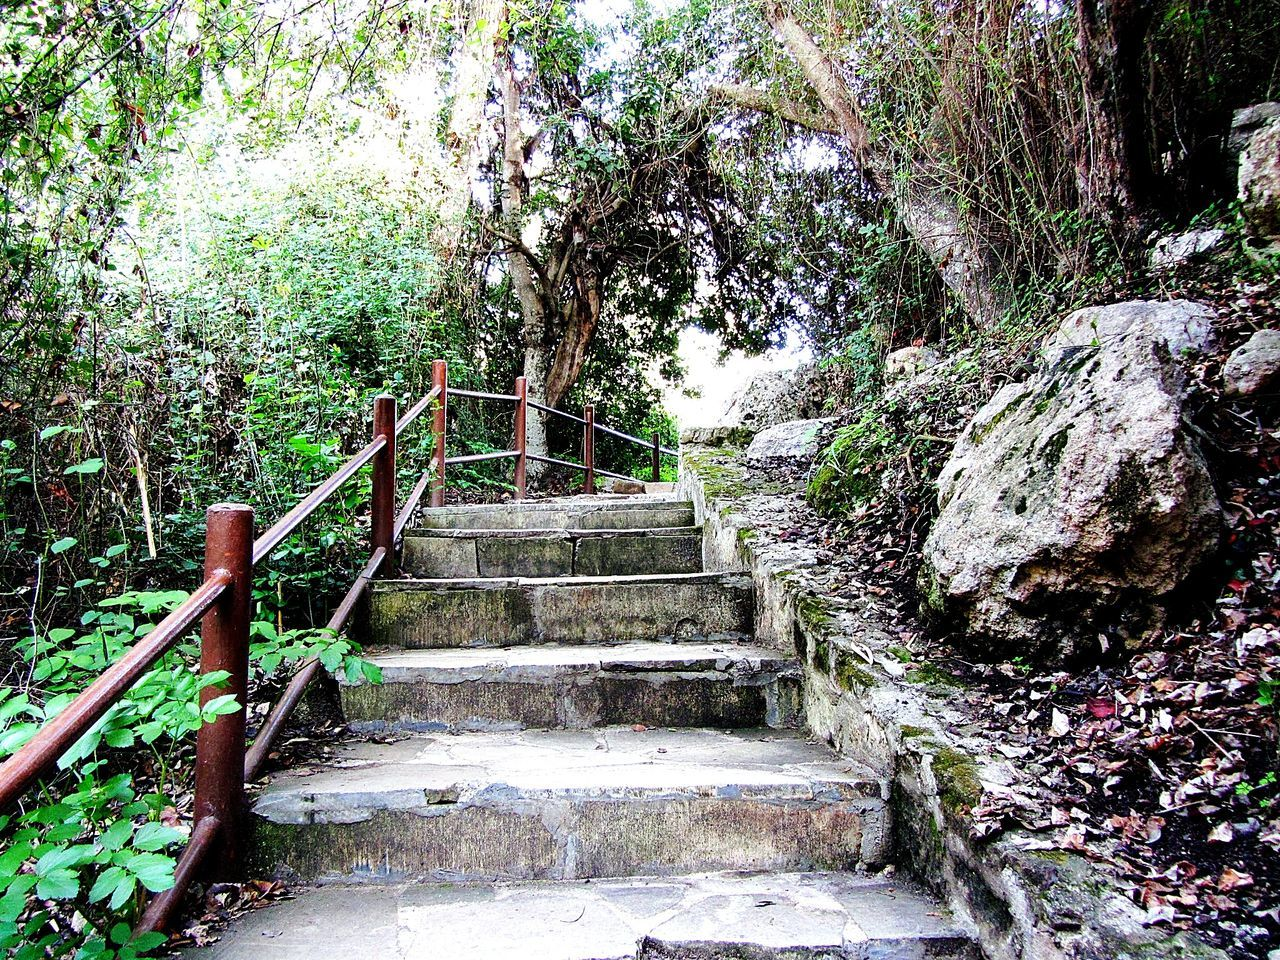 steps, staircase, tree, steps and staircases, nature, growth, tranquility, railing, stairs, tranquil scene, day, the way forward, no people, beauty in nature, forest, plant, outdoors, branch